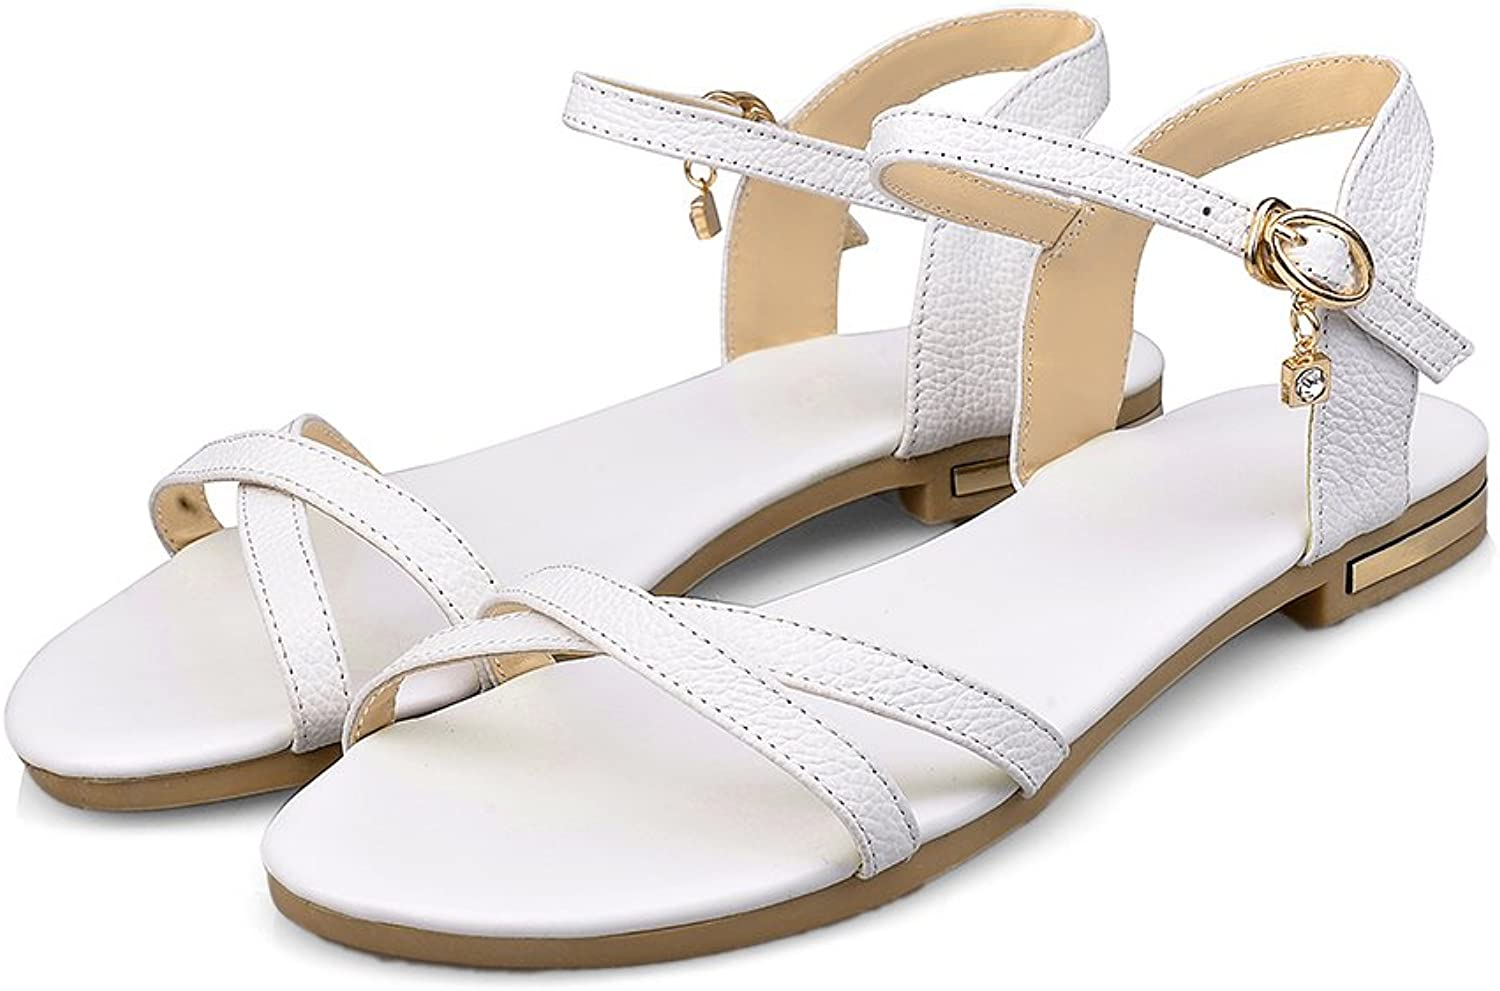 Women's Comfortable Genuine Leather Casual Sandals